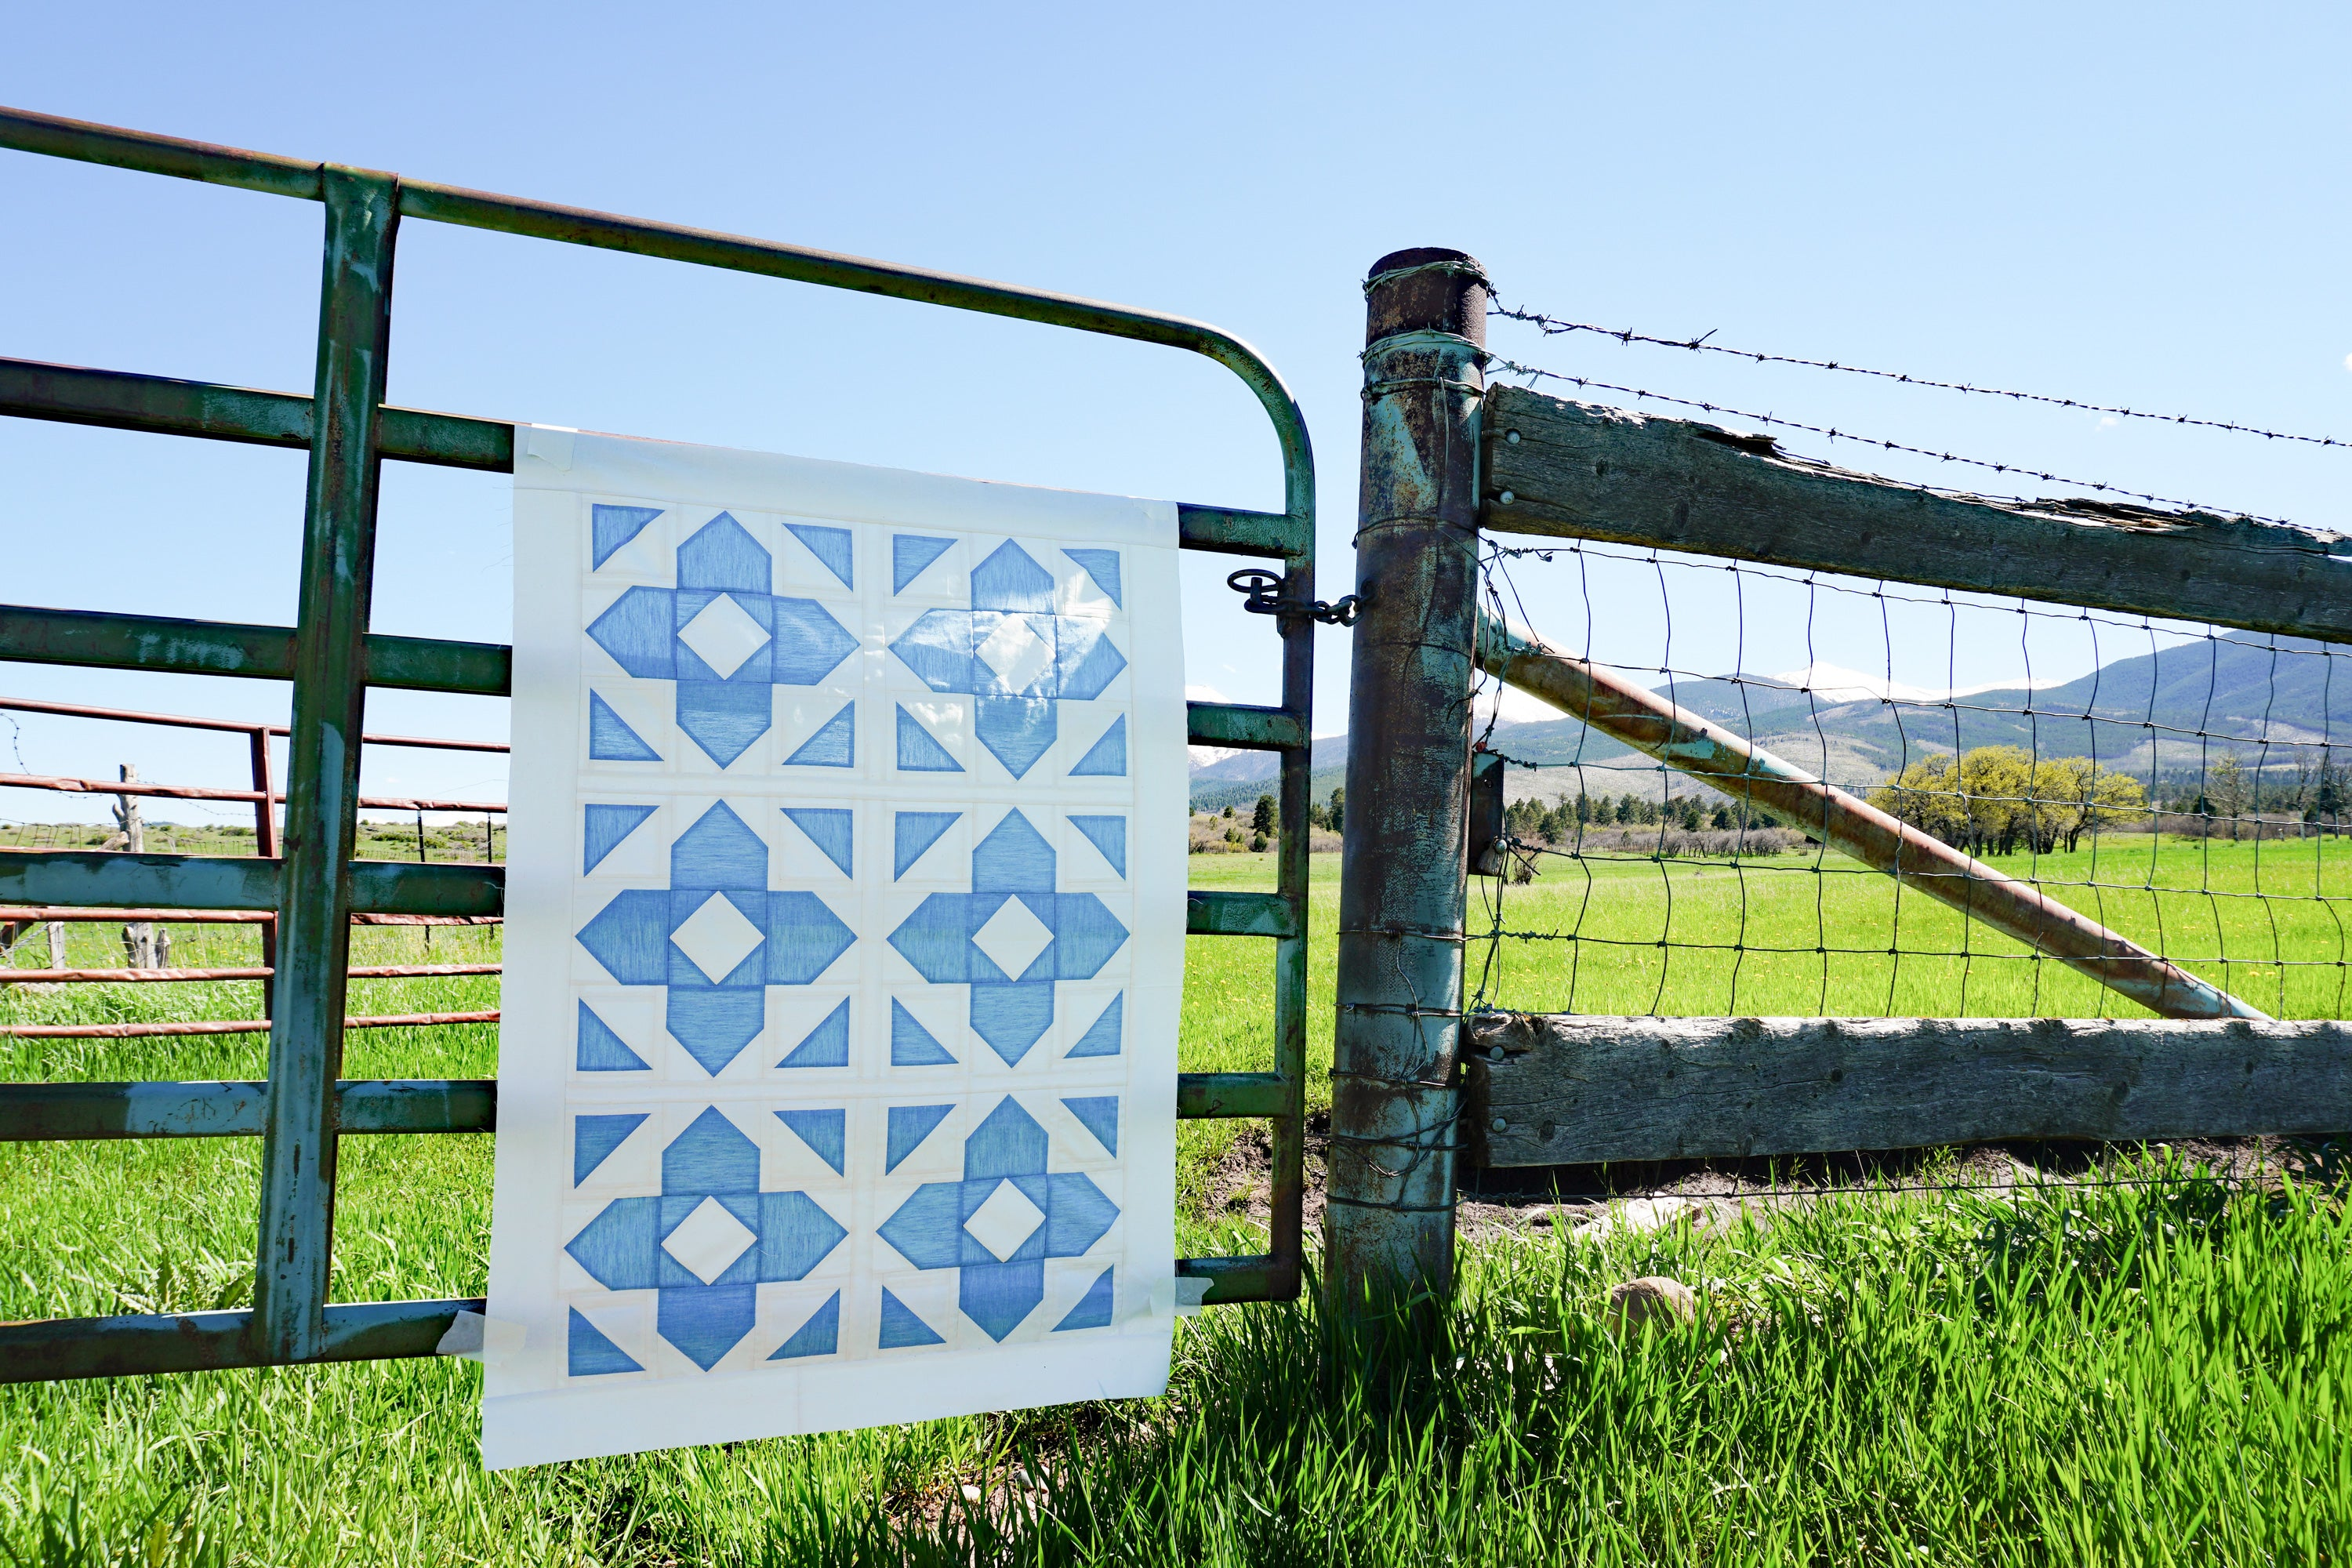 Luminaries quilt by Cotton and Joy - quilt wall hanging in the wild